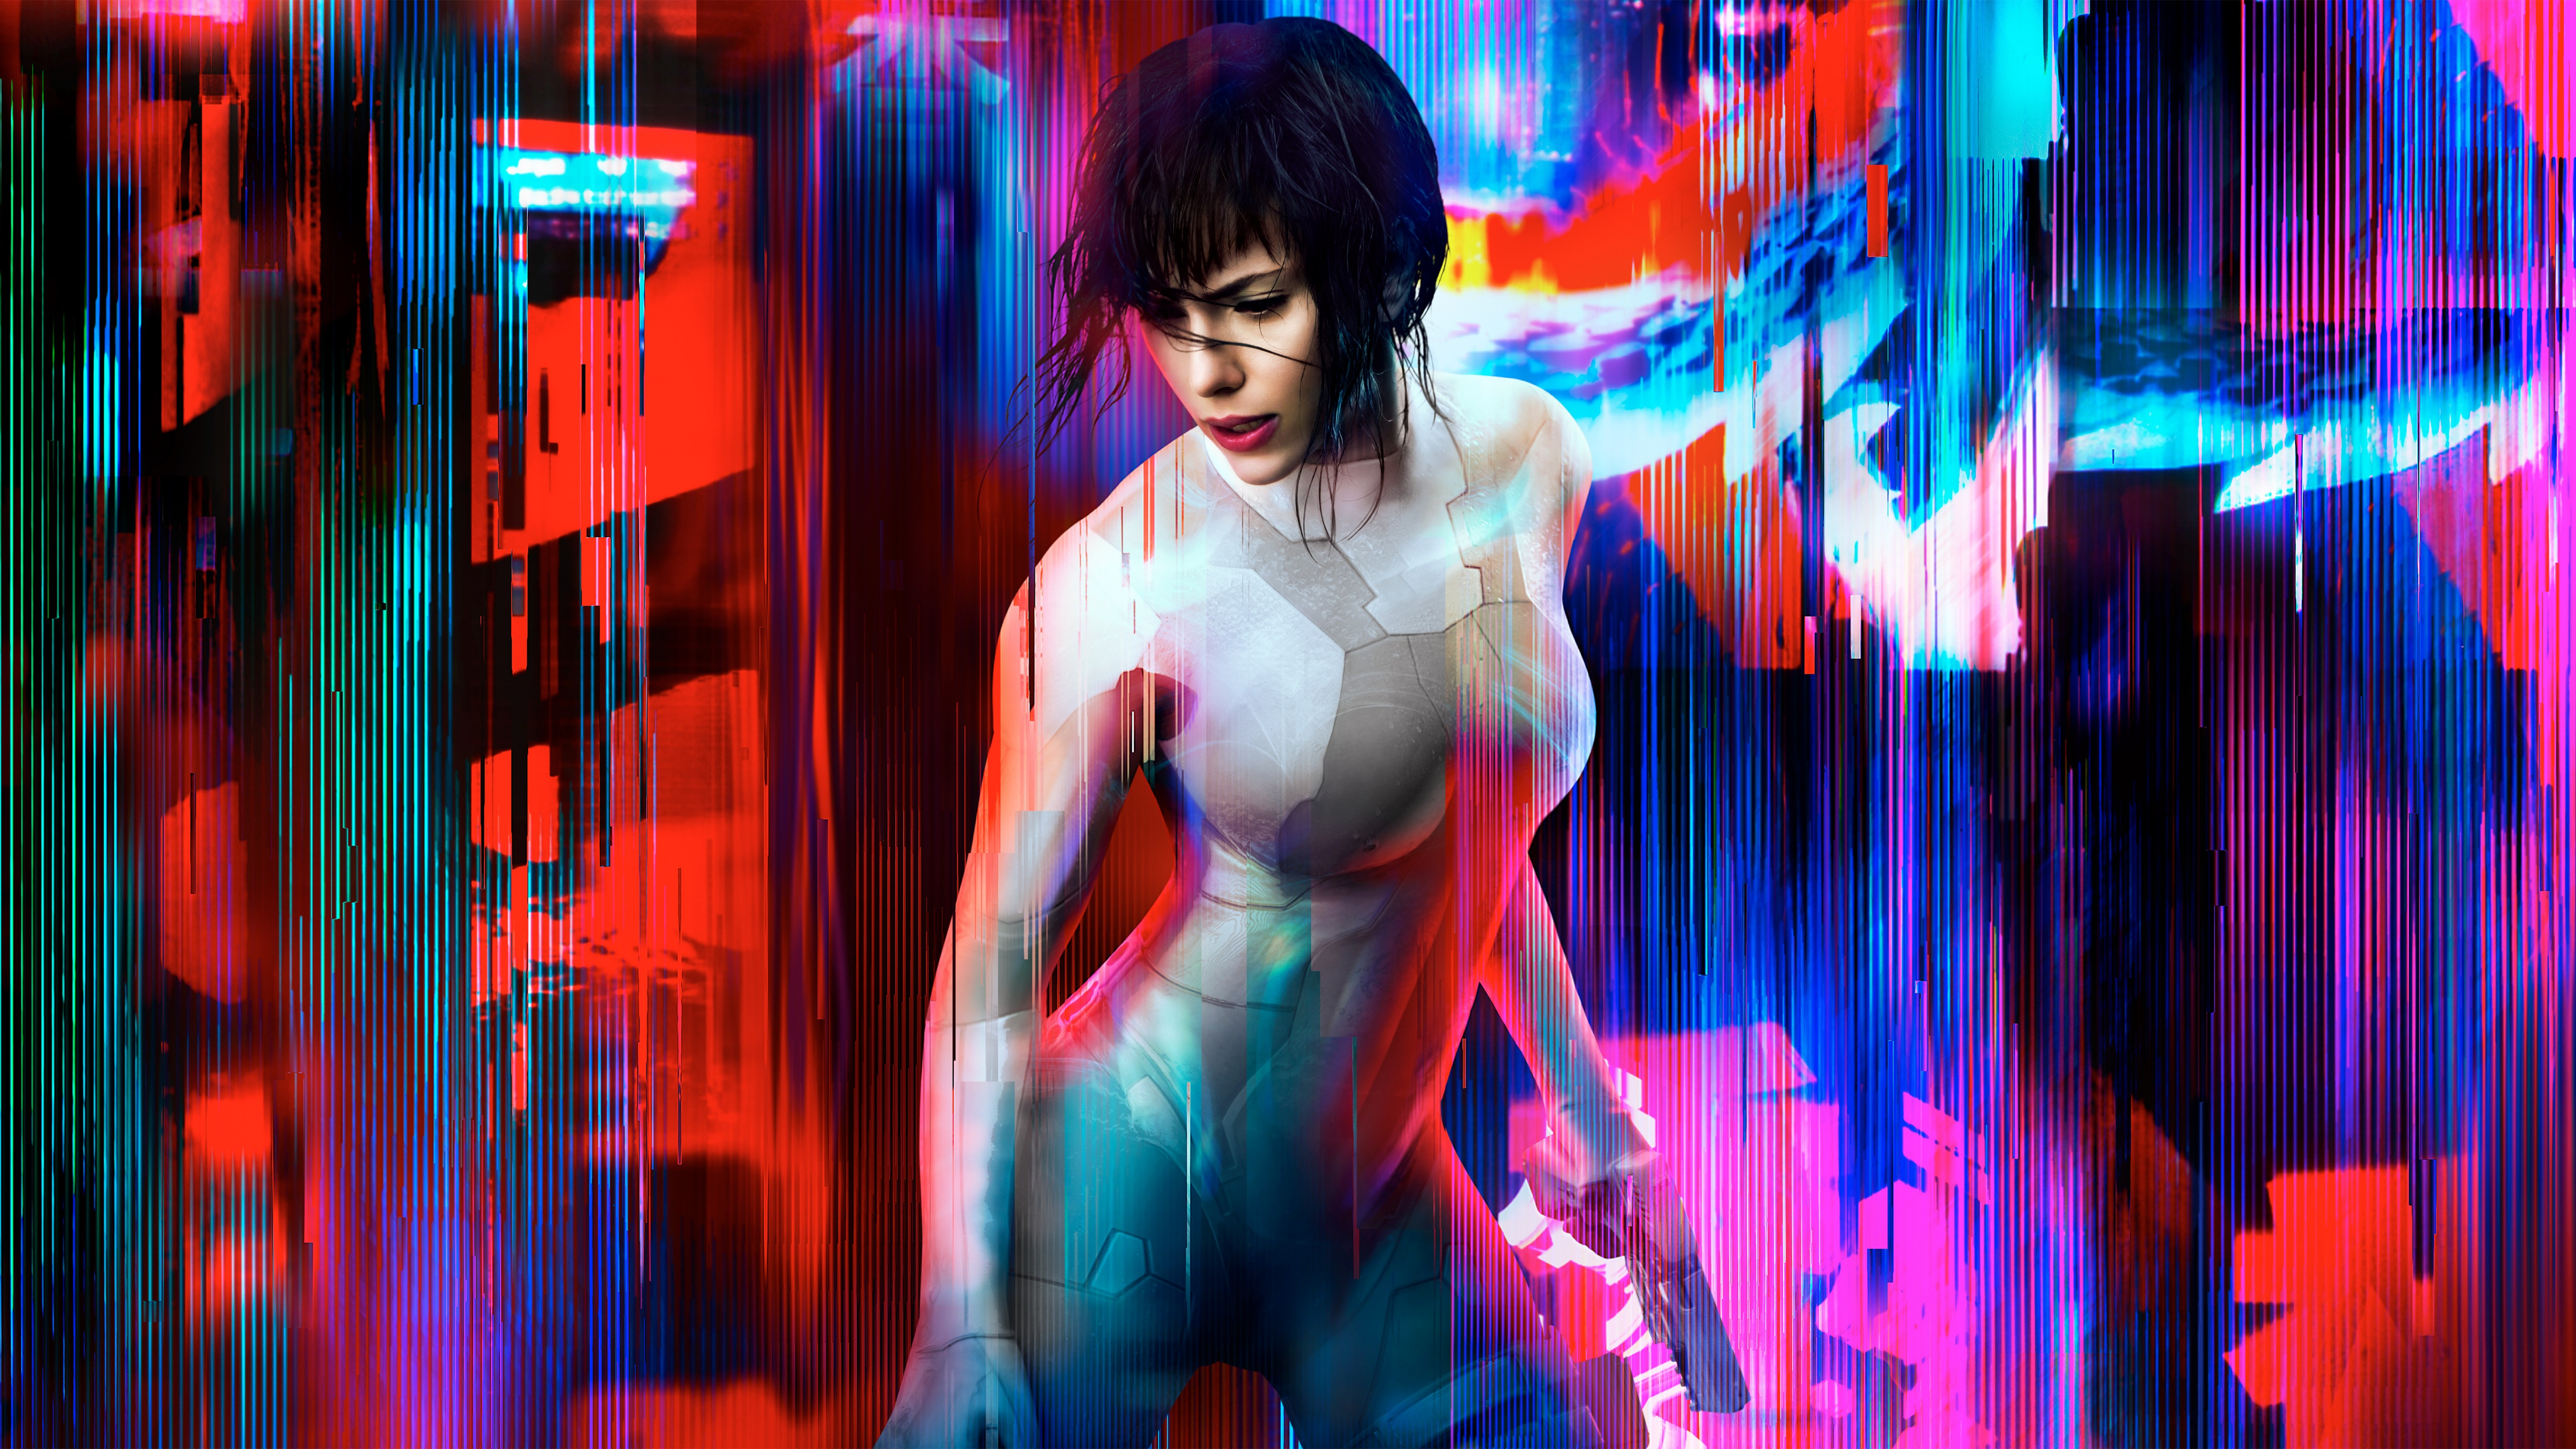 2017 Ghost In The Shell 5k Hd Movies 4k Wallpapers Images